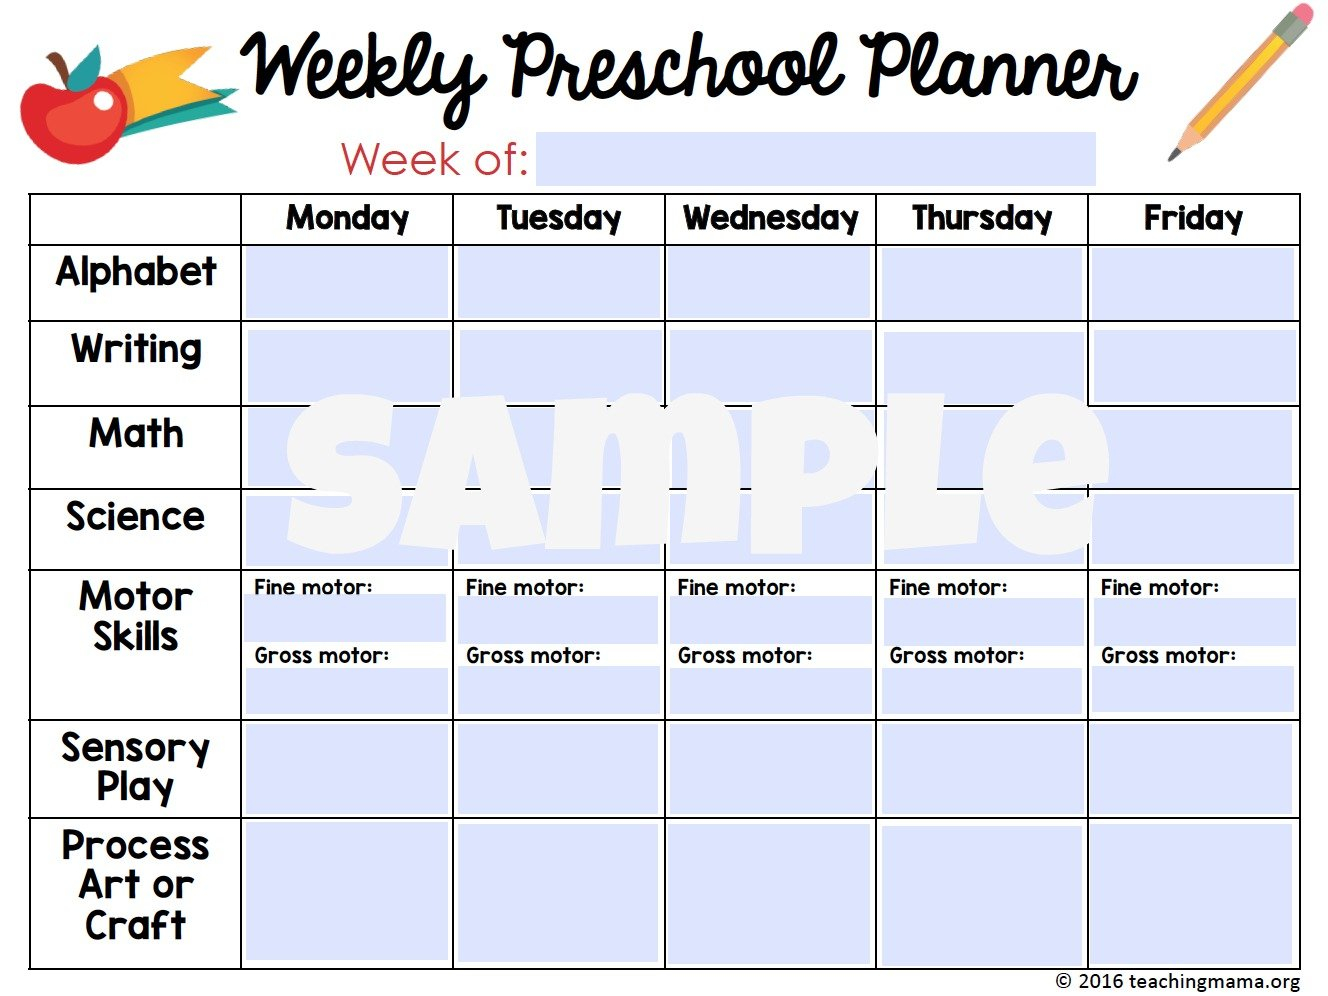 Printable Classroom Planner Lesson Plan Template Weekly Prescool Plannar